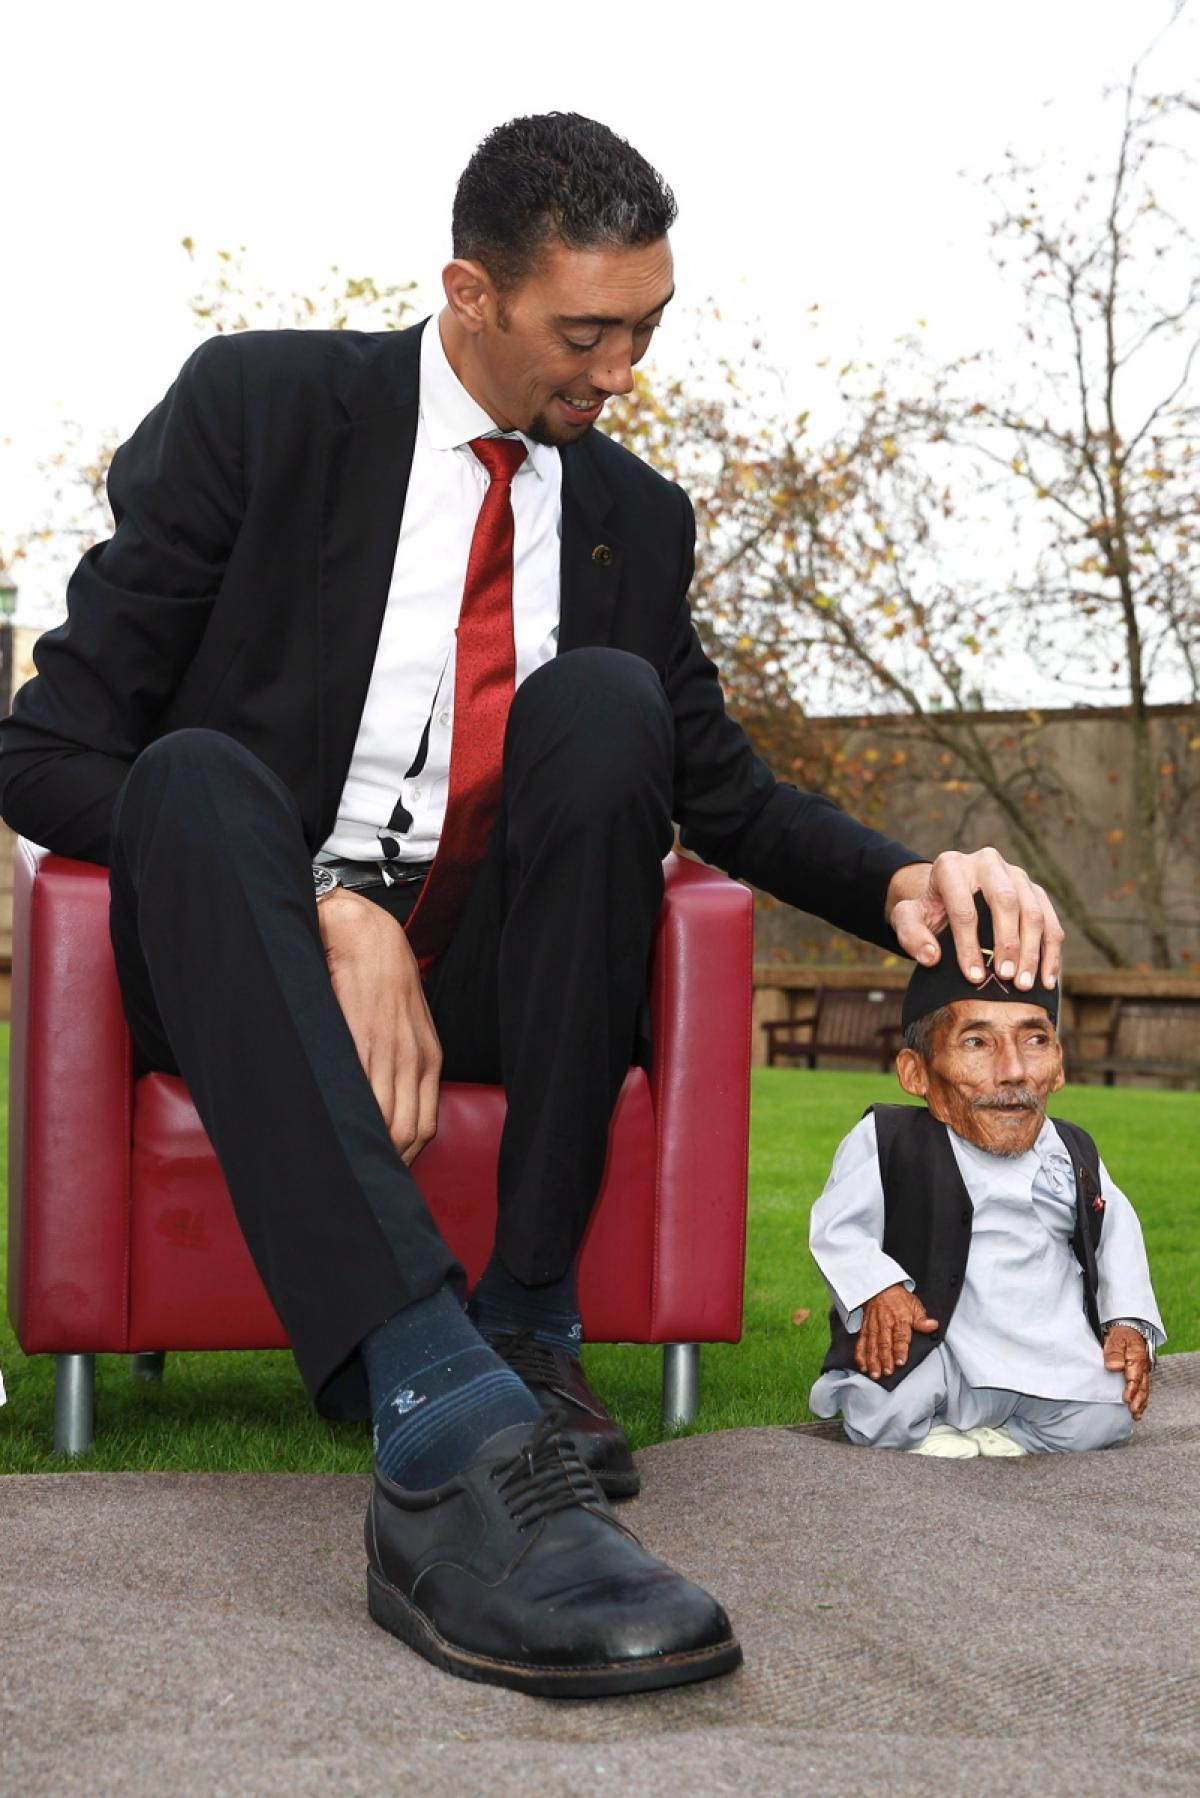 World S Tallest Man Poses With World S Shortest Man